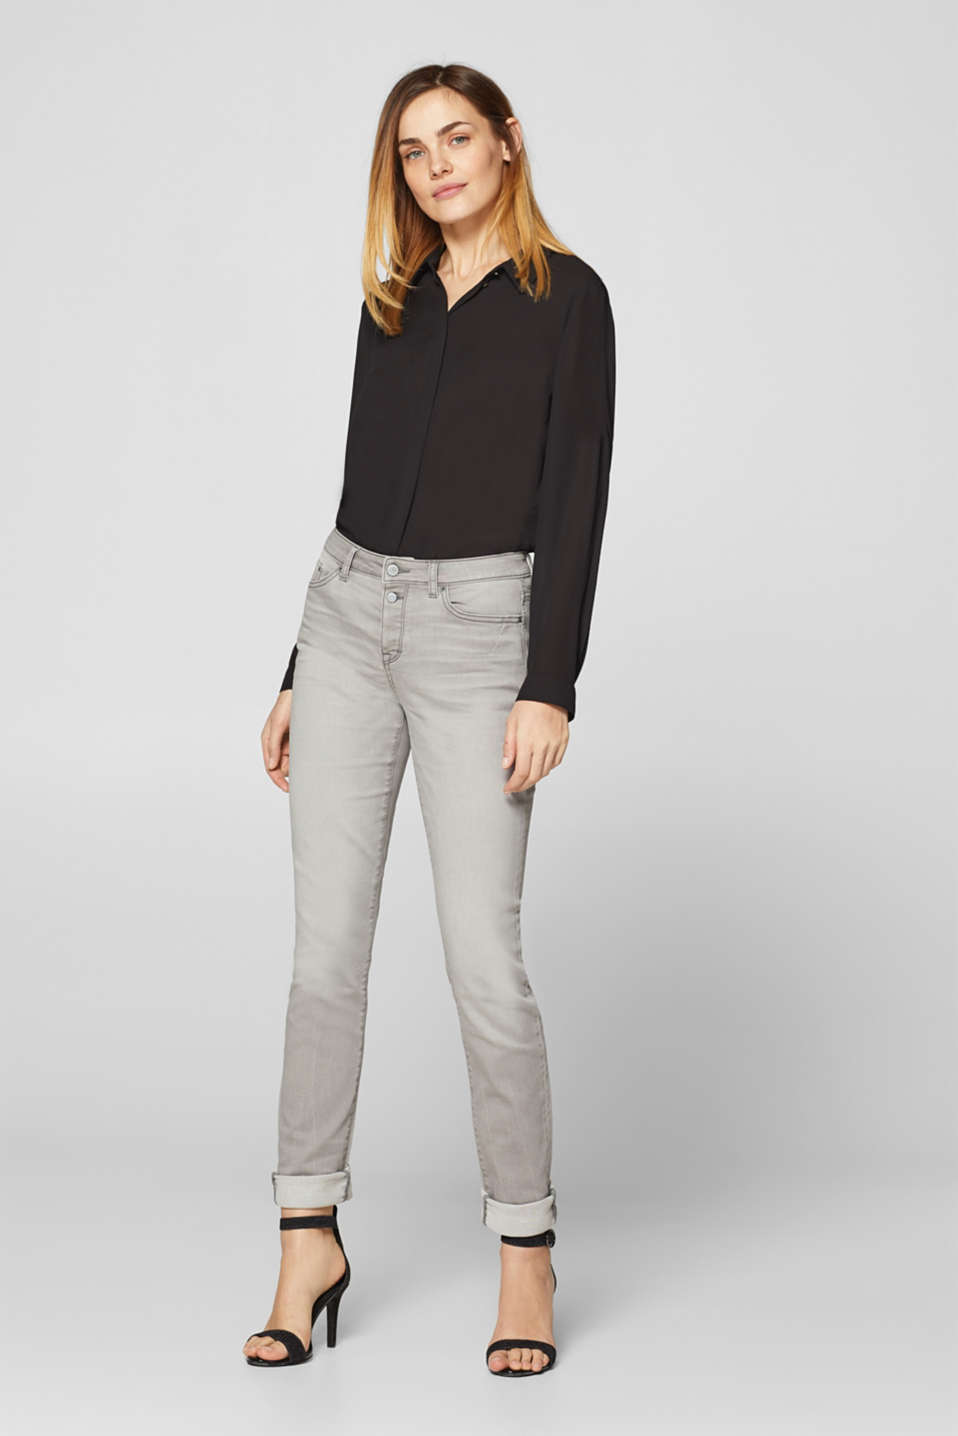 Esprit - Soft stretch jeans with a button placket